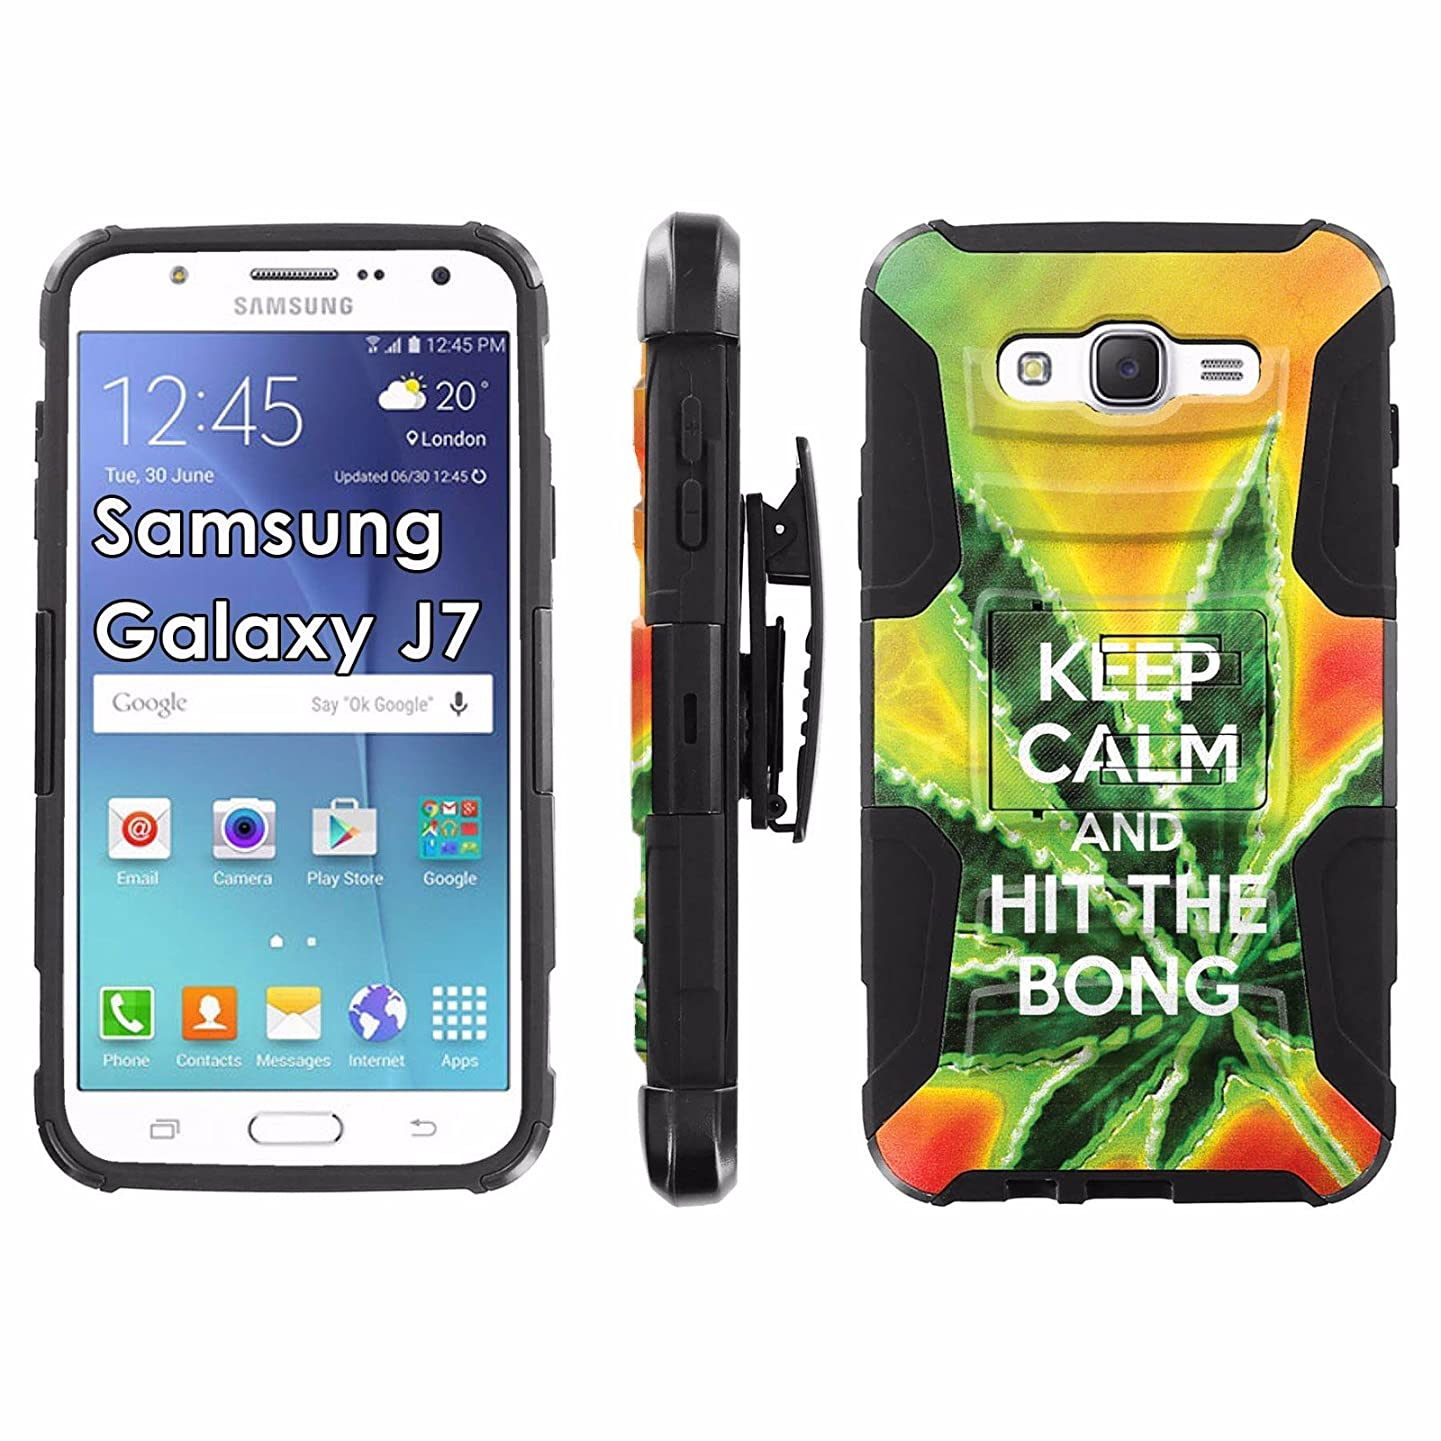 Samsung Galaxy J7 Phone Cover, Keep Calm Hit the Bong- Black Blitz Hybrid Armor Phone Case for [Samsung Galaxy J7] with [Kickstand and Holster]